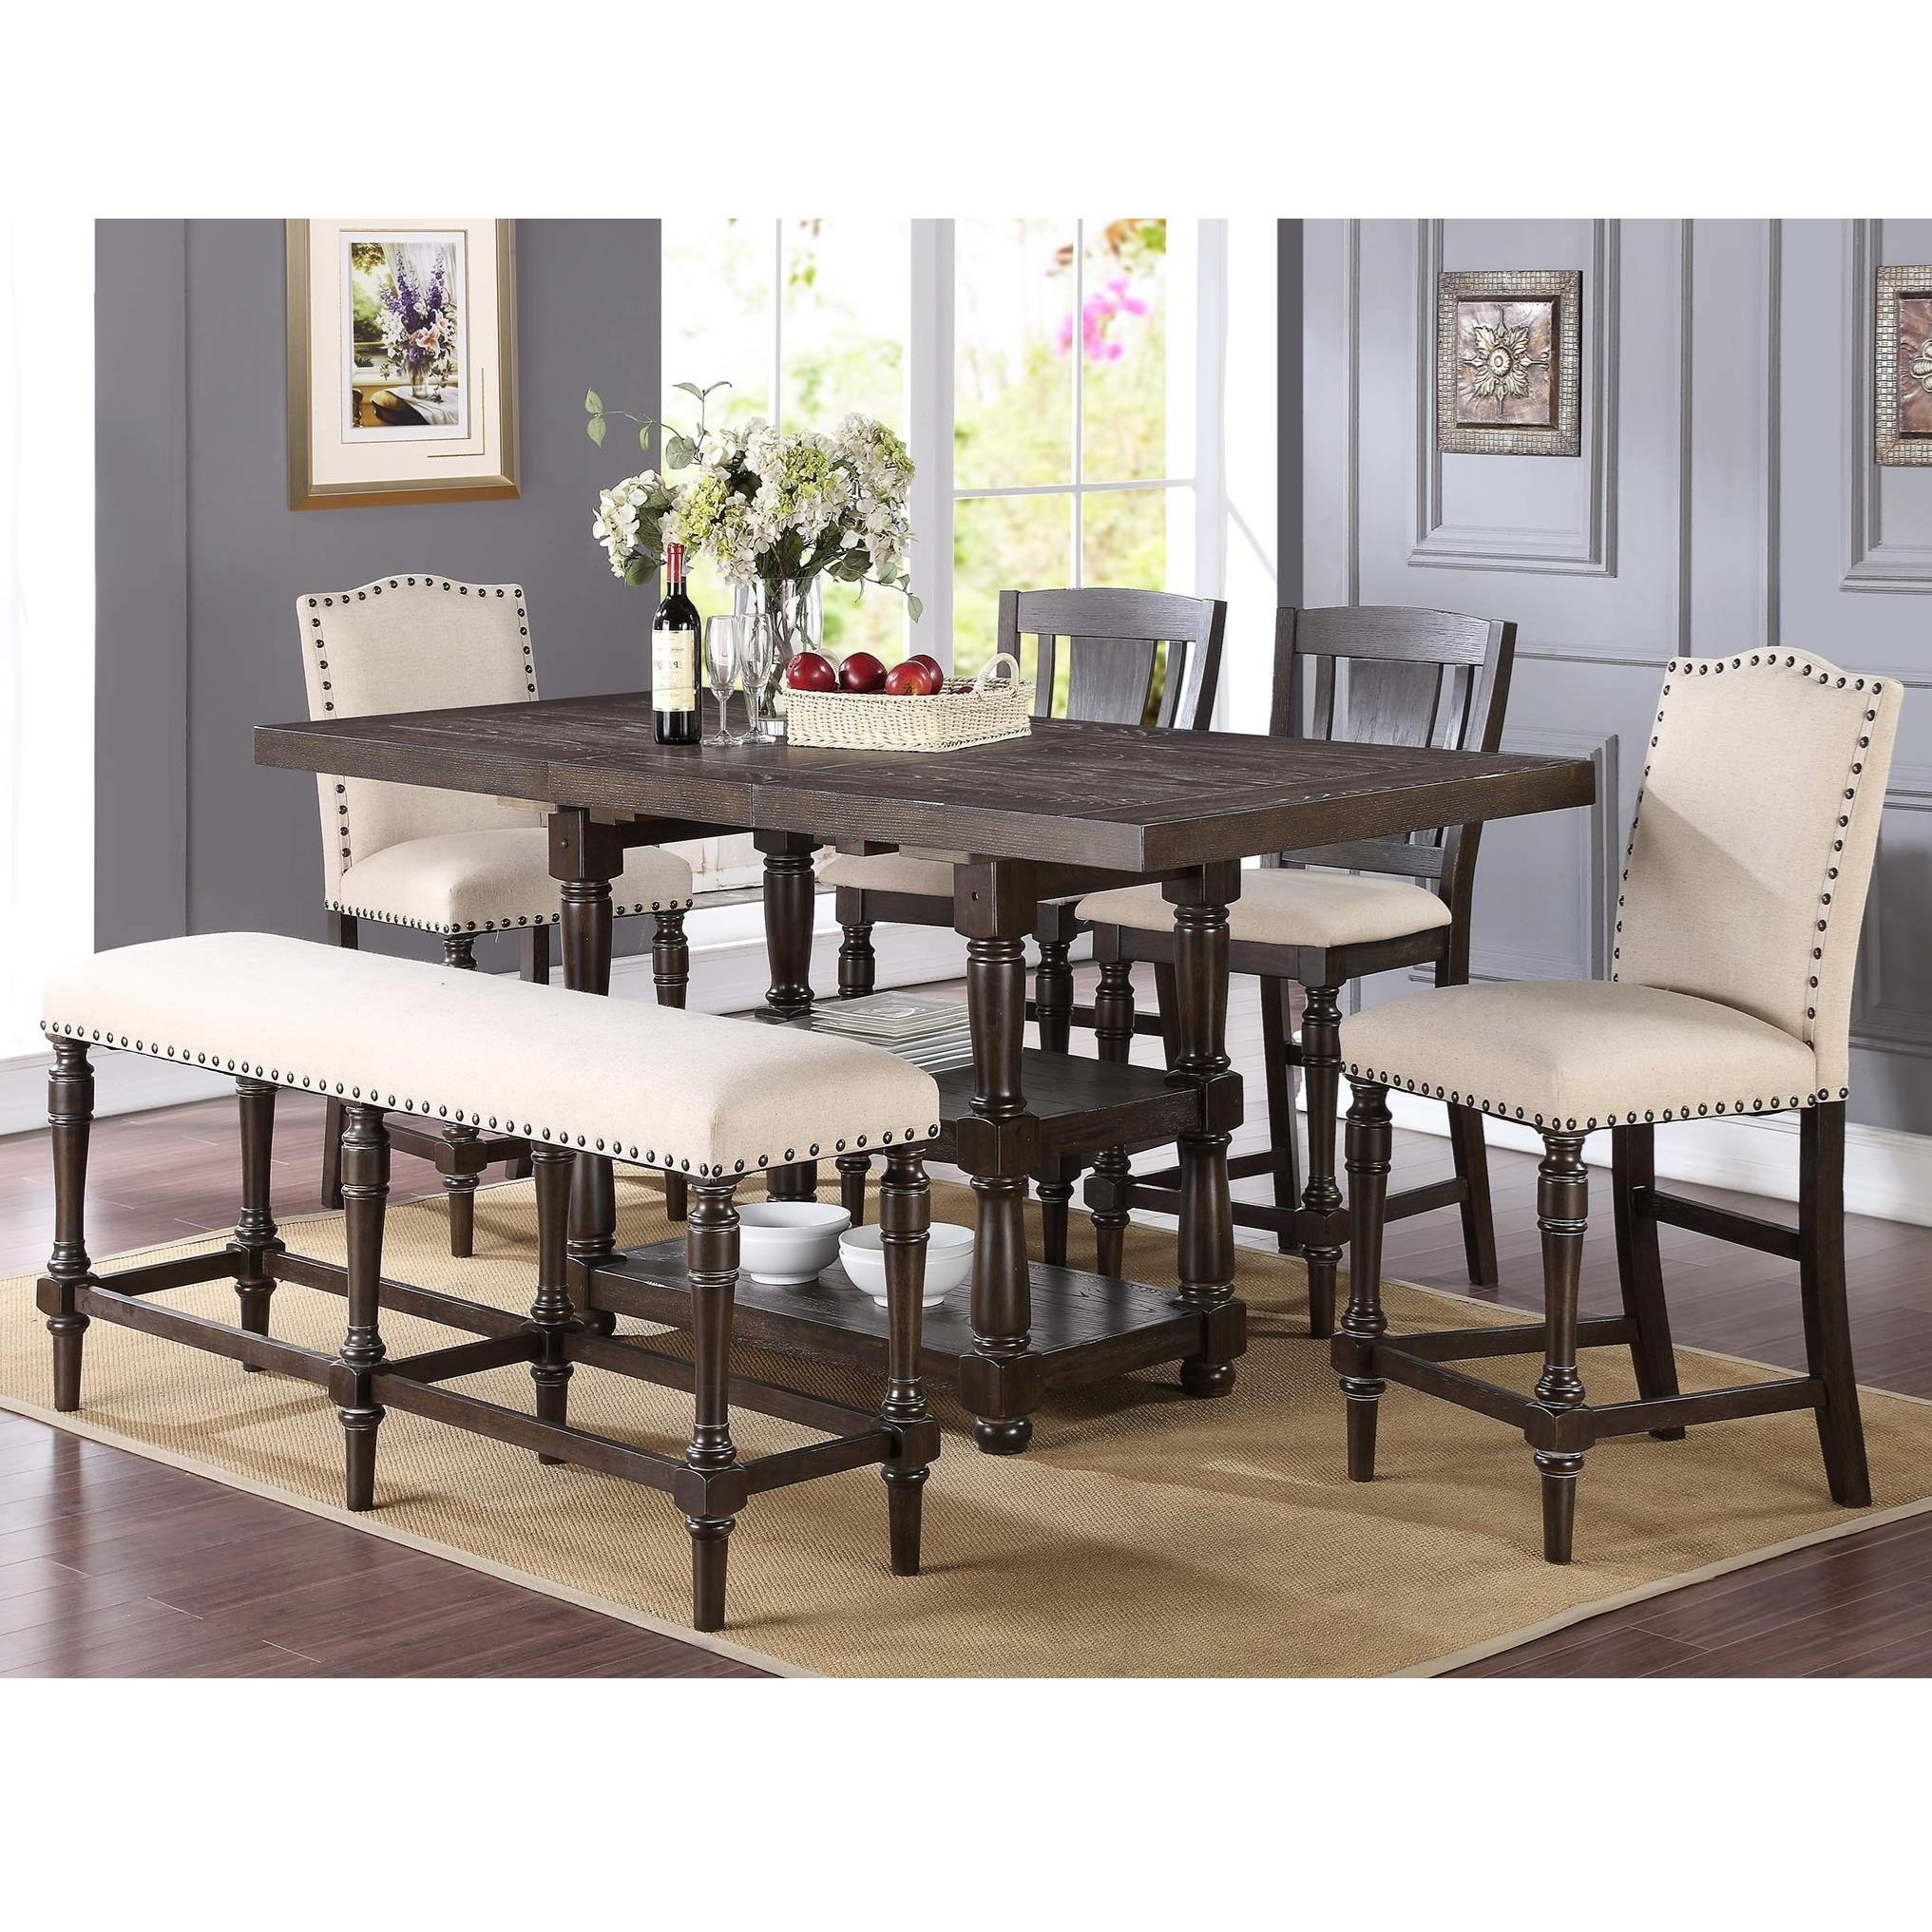 Dining Room Set For 2: Winners Only Xcalibur Counter Height Dining Set With